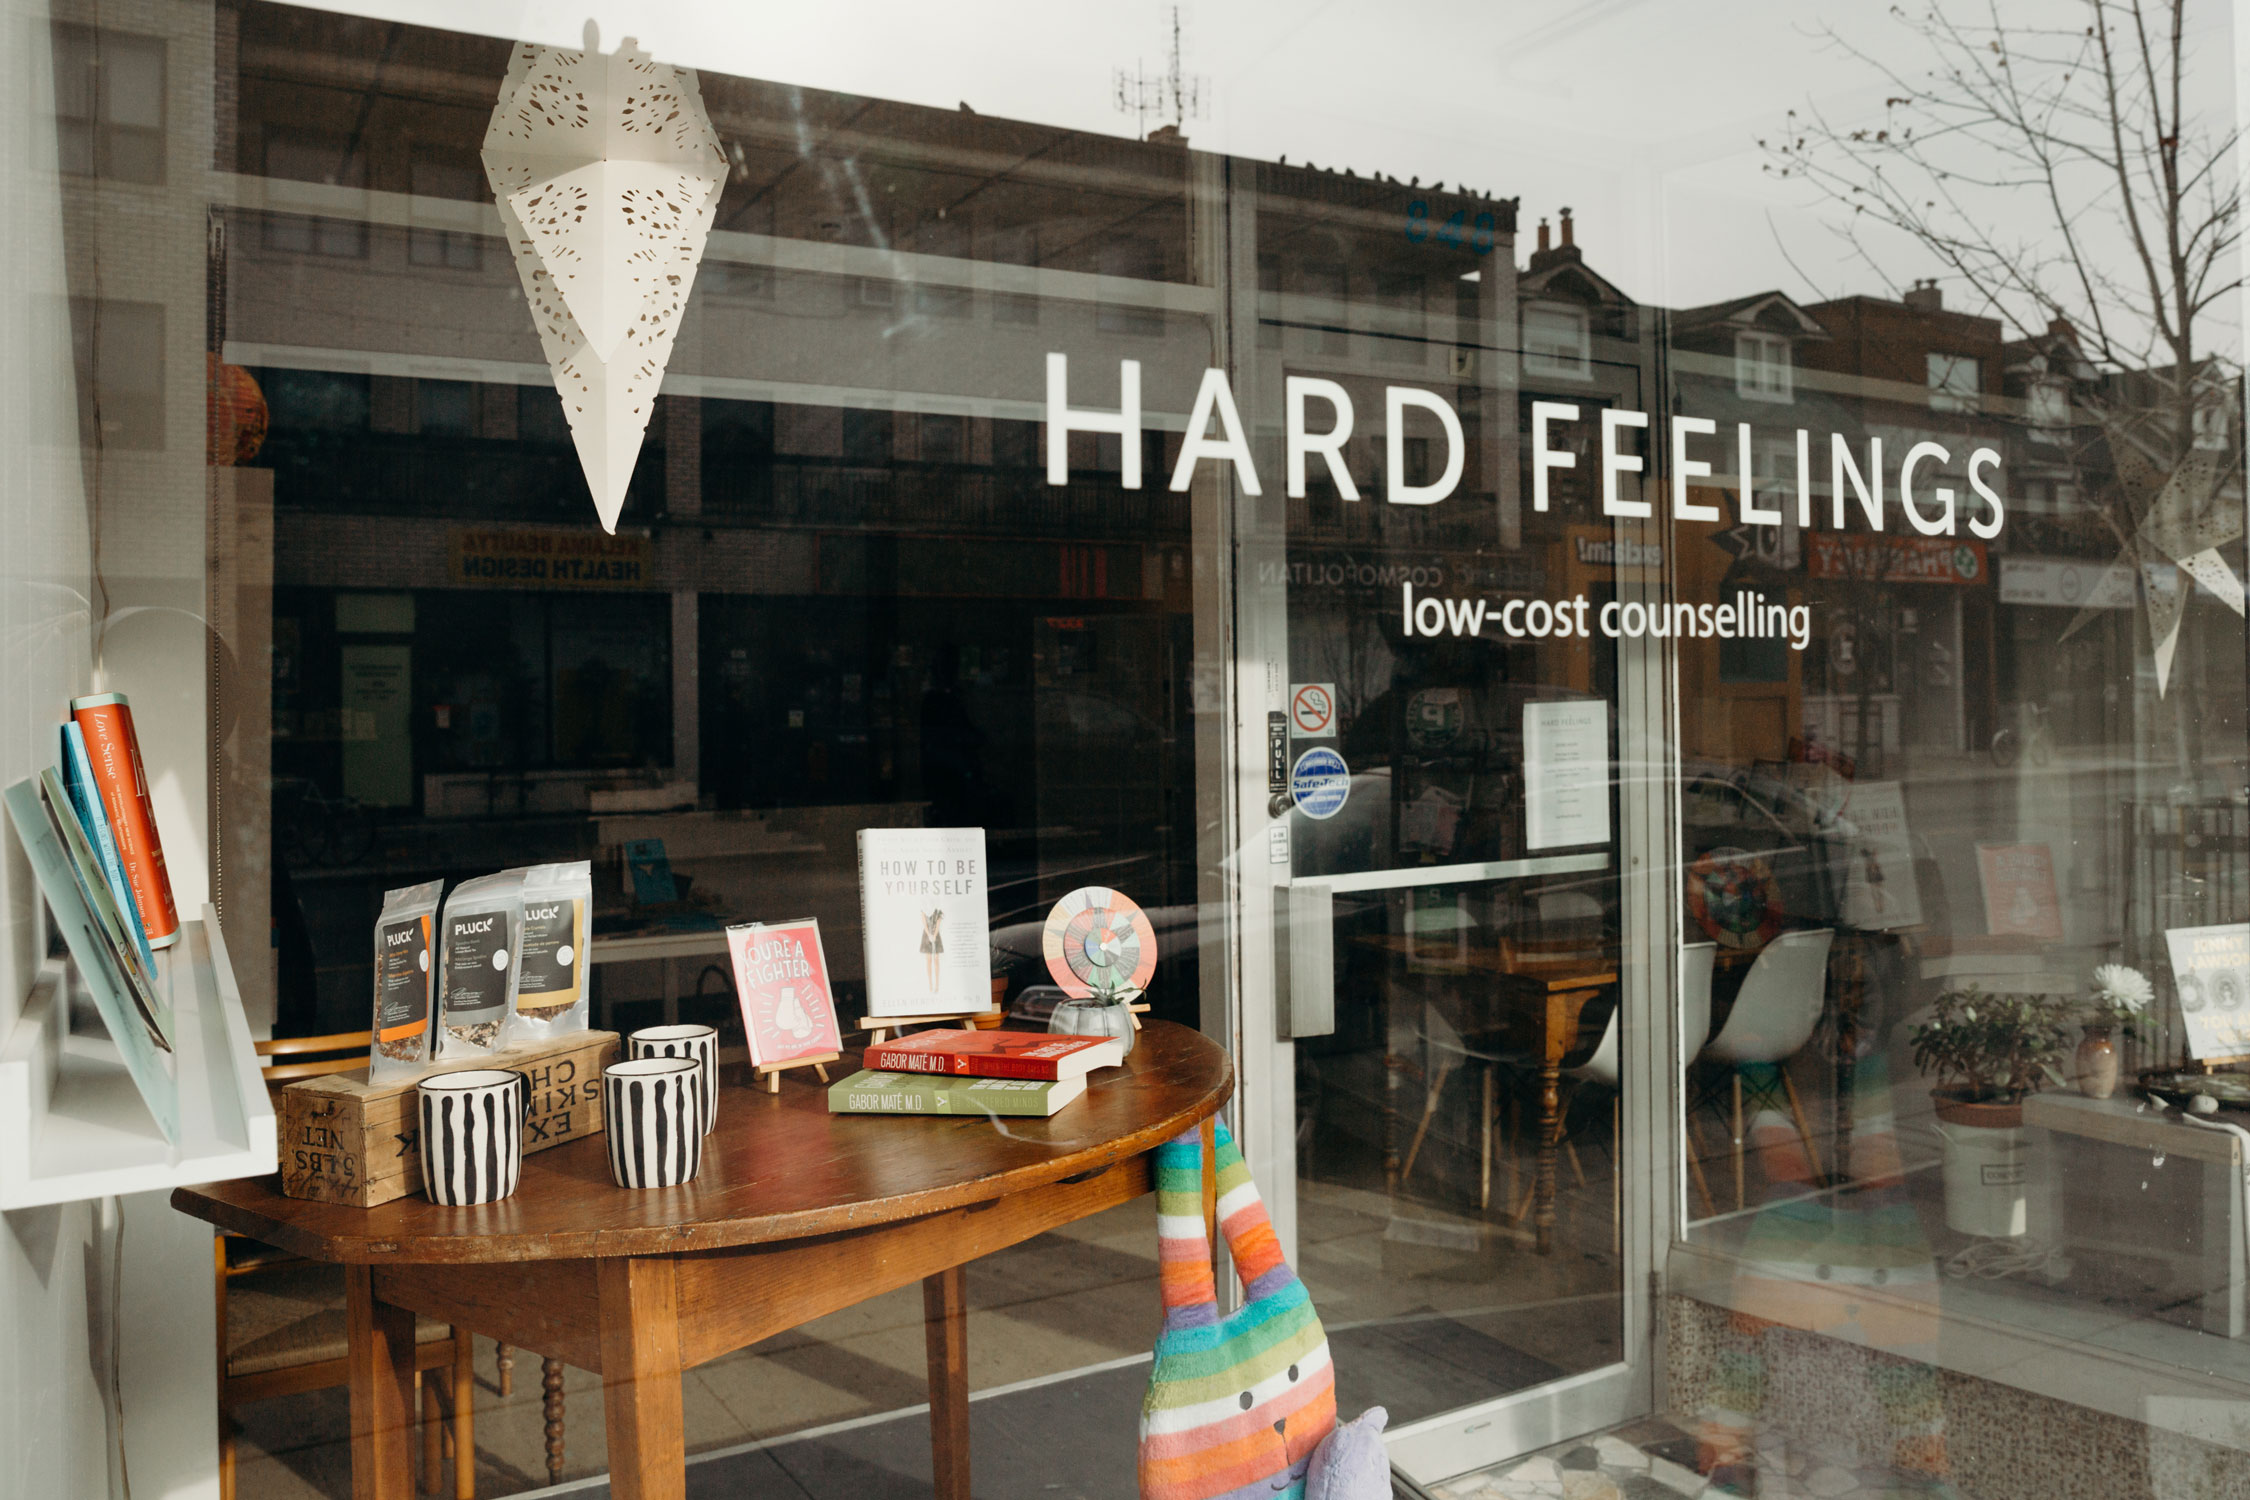 The Hard Feelings storefront on Bloor Street West in Toronto